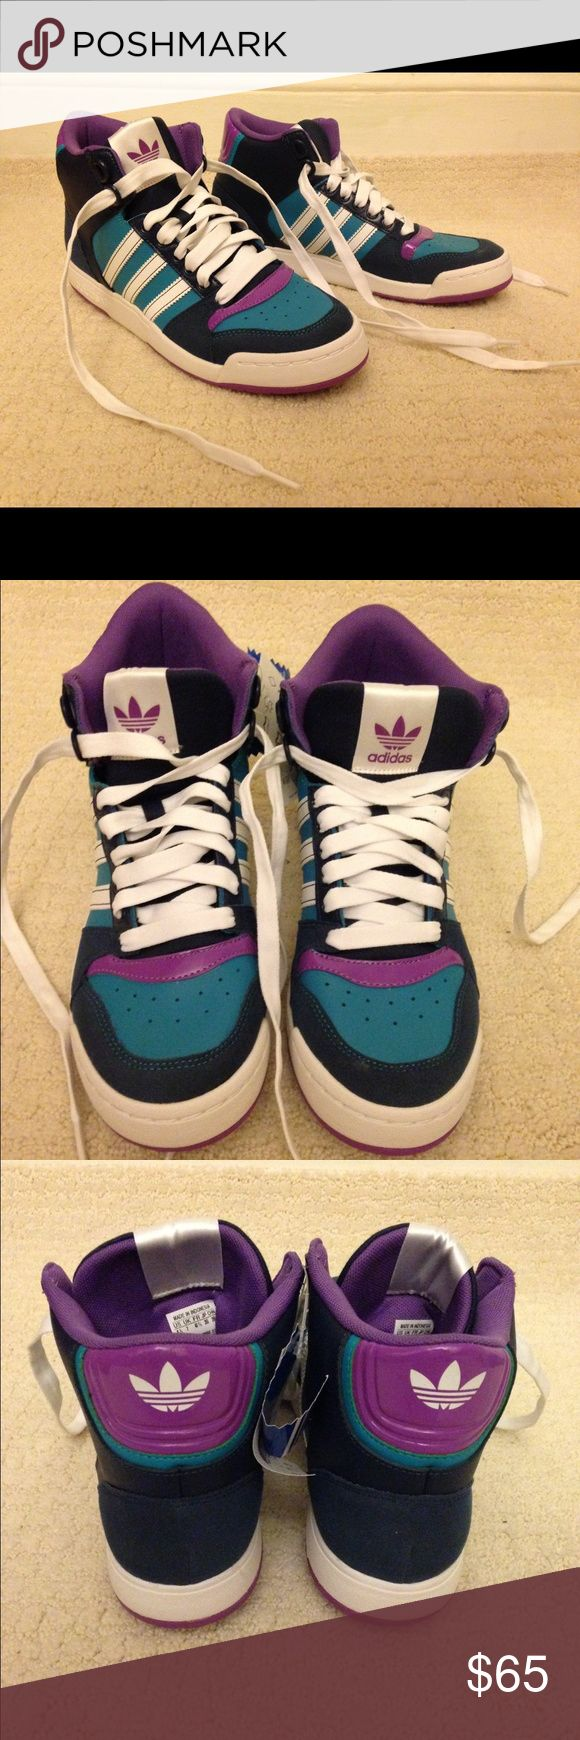 Adidas Midiru Court 2.0 high top sneakers Brand new in box Adidas high top sneakers.  Navy with teal and purple accents. Not too heavy so fun for summer! Adidas Shoes Sneakers